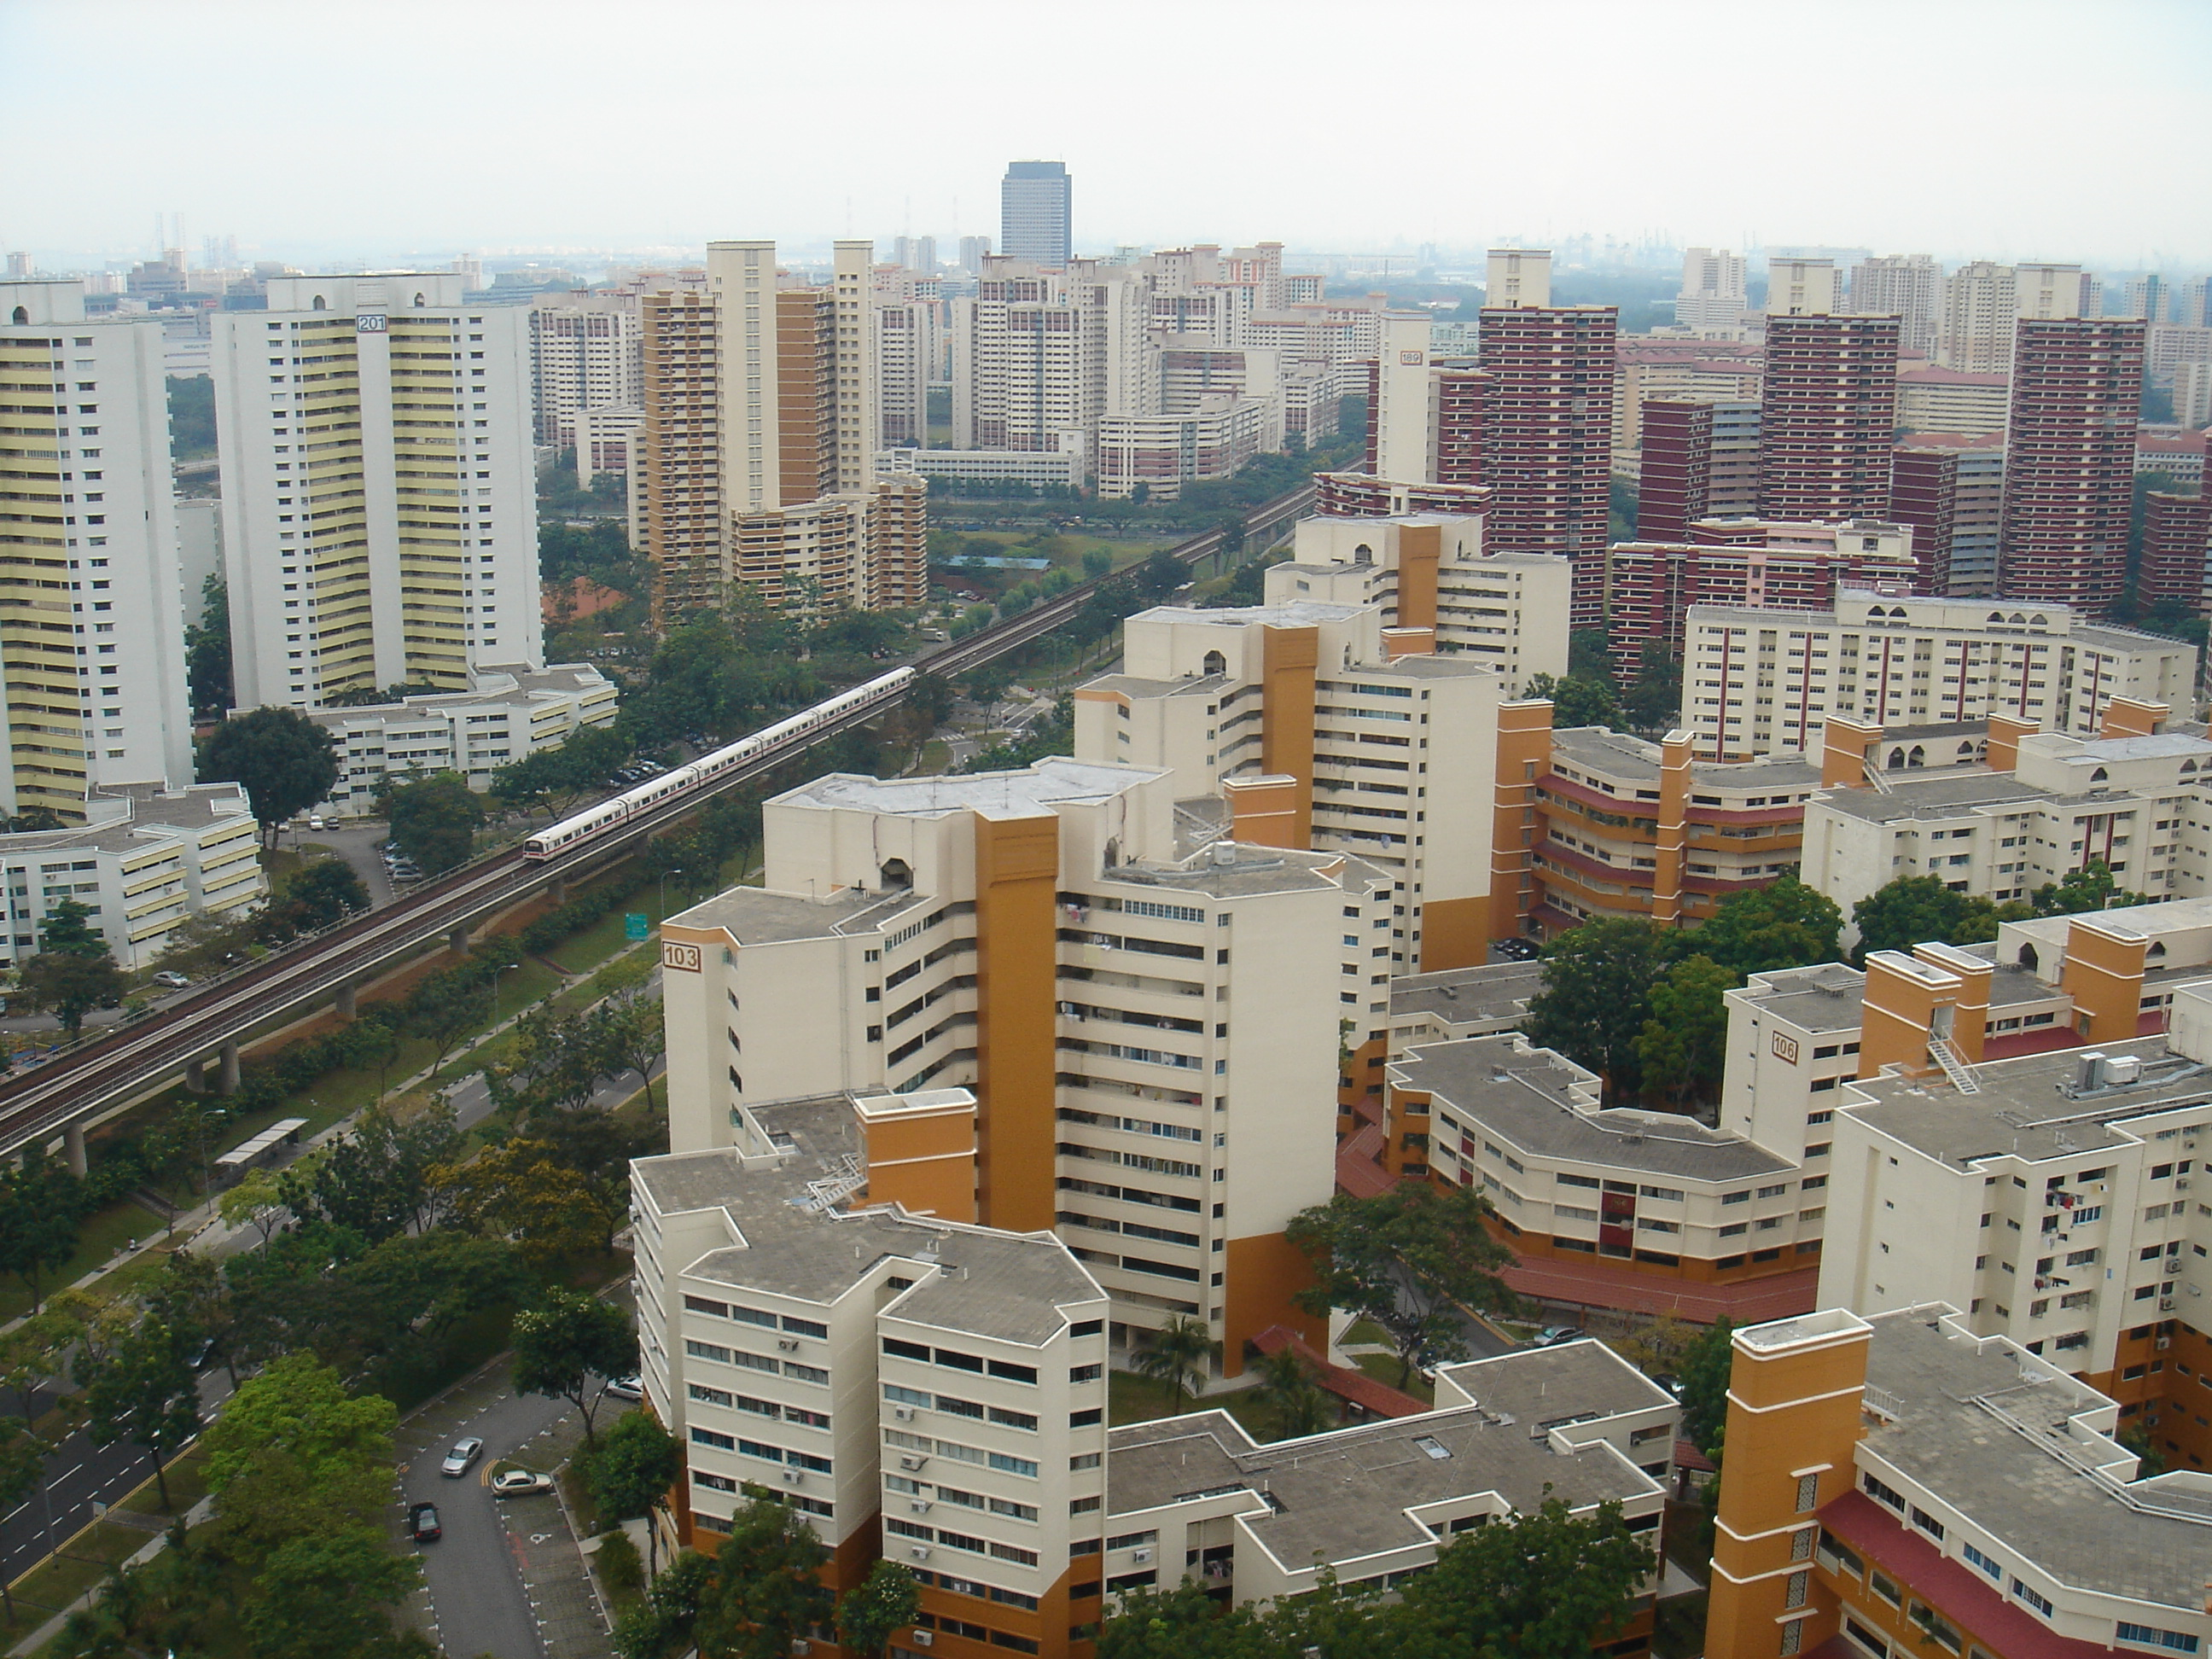 Overview of Bukit Batok an example of